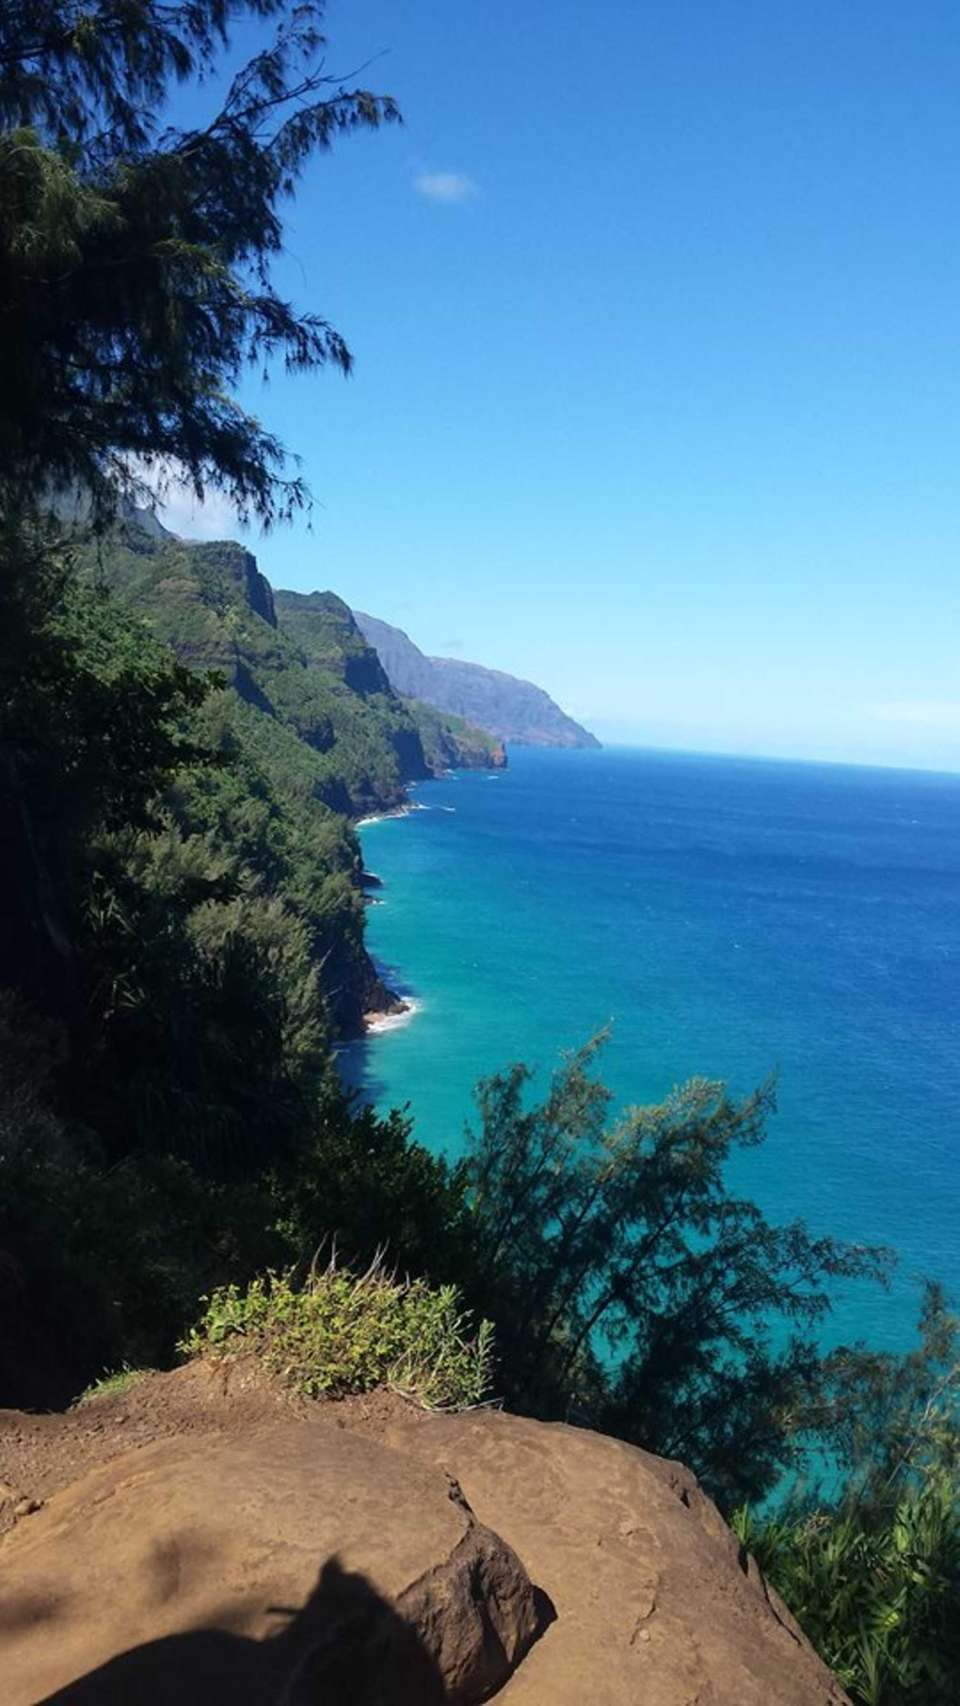 Hiking to Hanakapiai Beach on the Napali Coast,